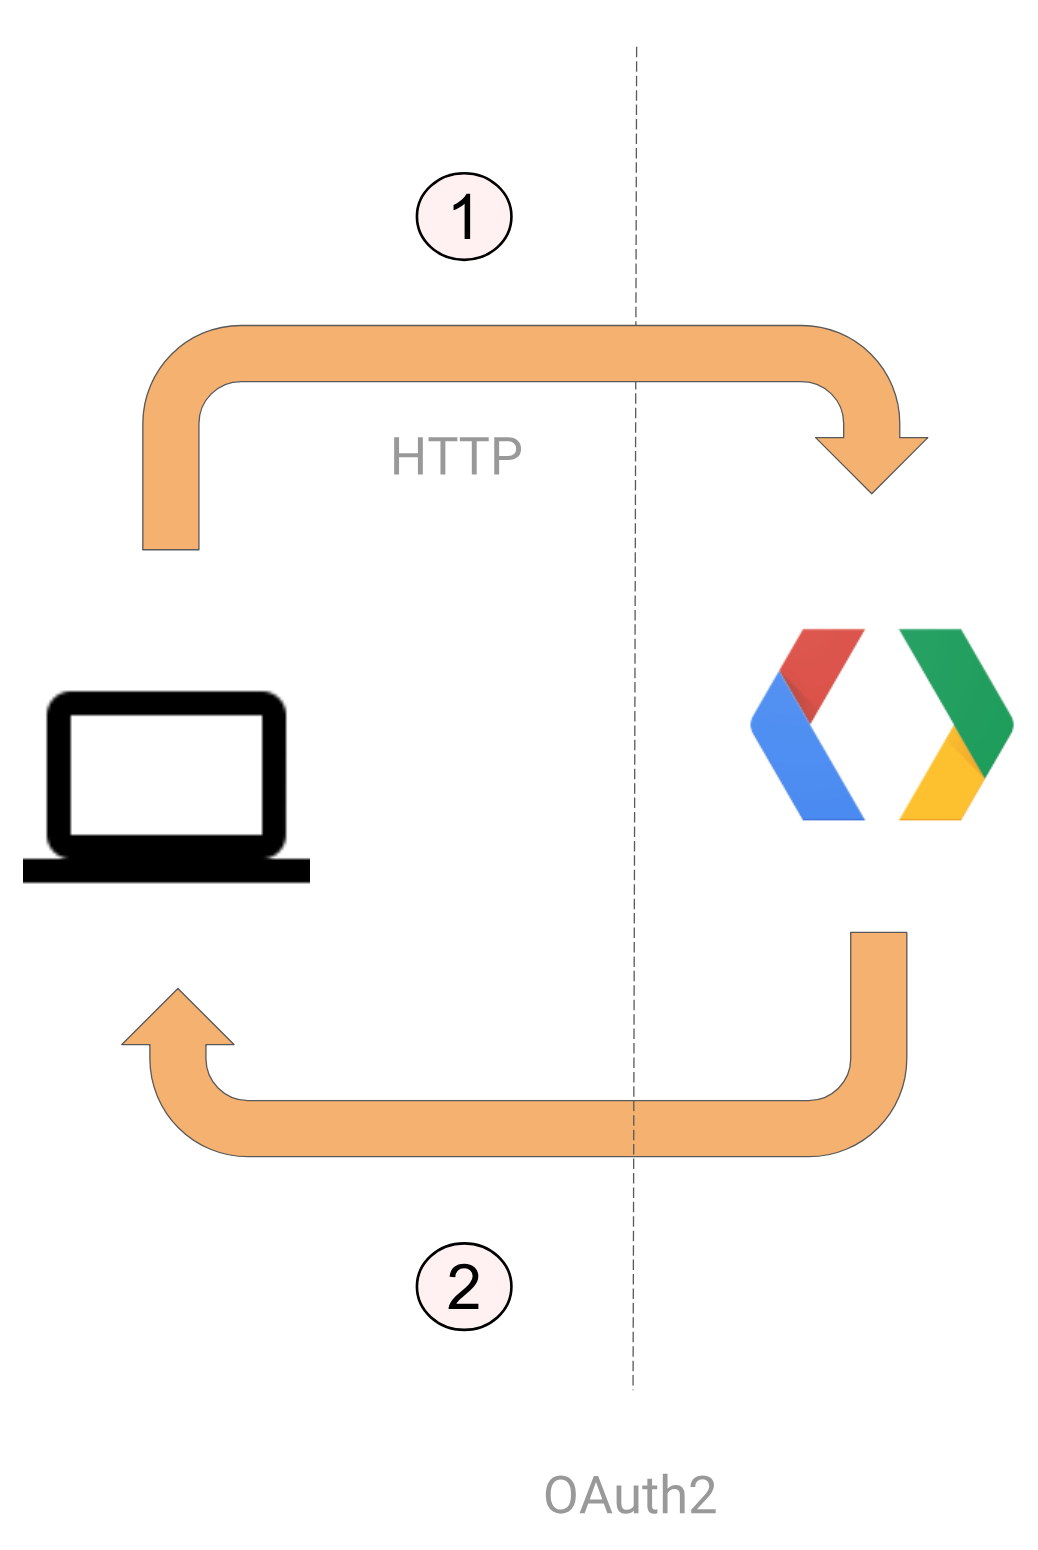 Core Python Programming: Creating Hangouts Chat bots with Python